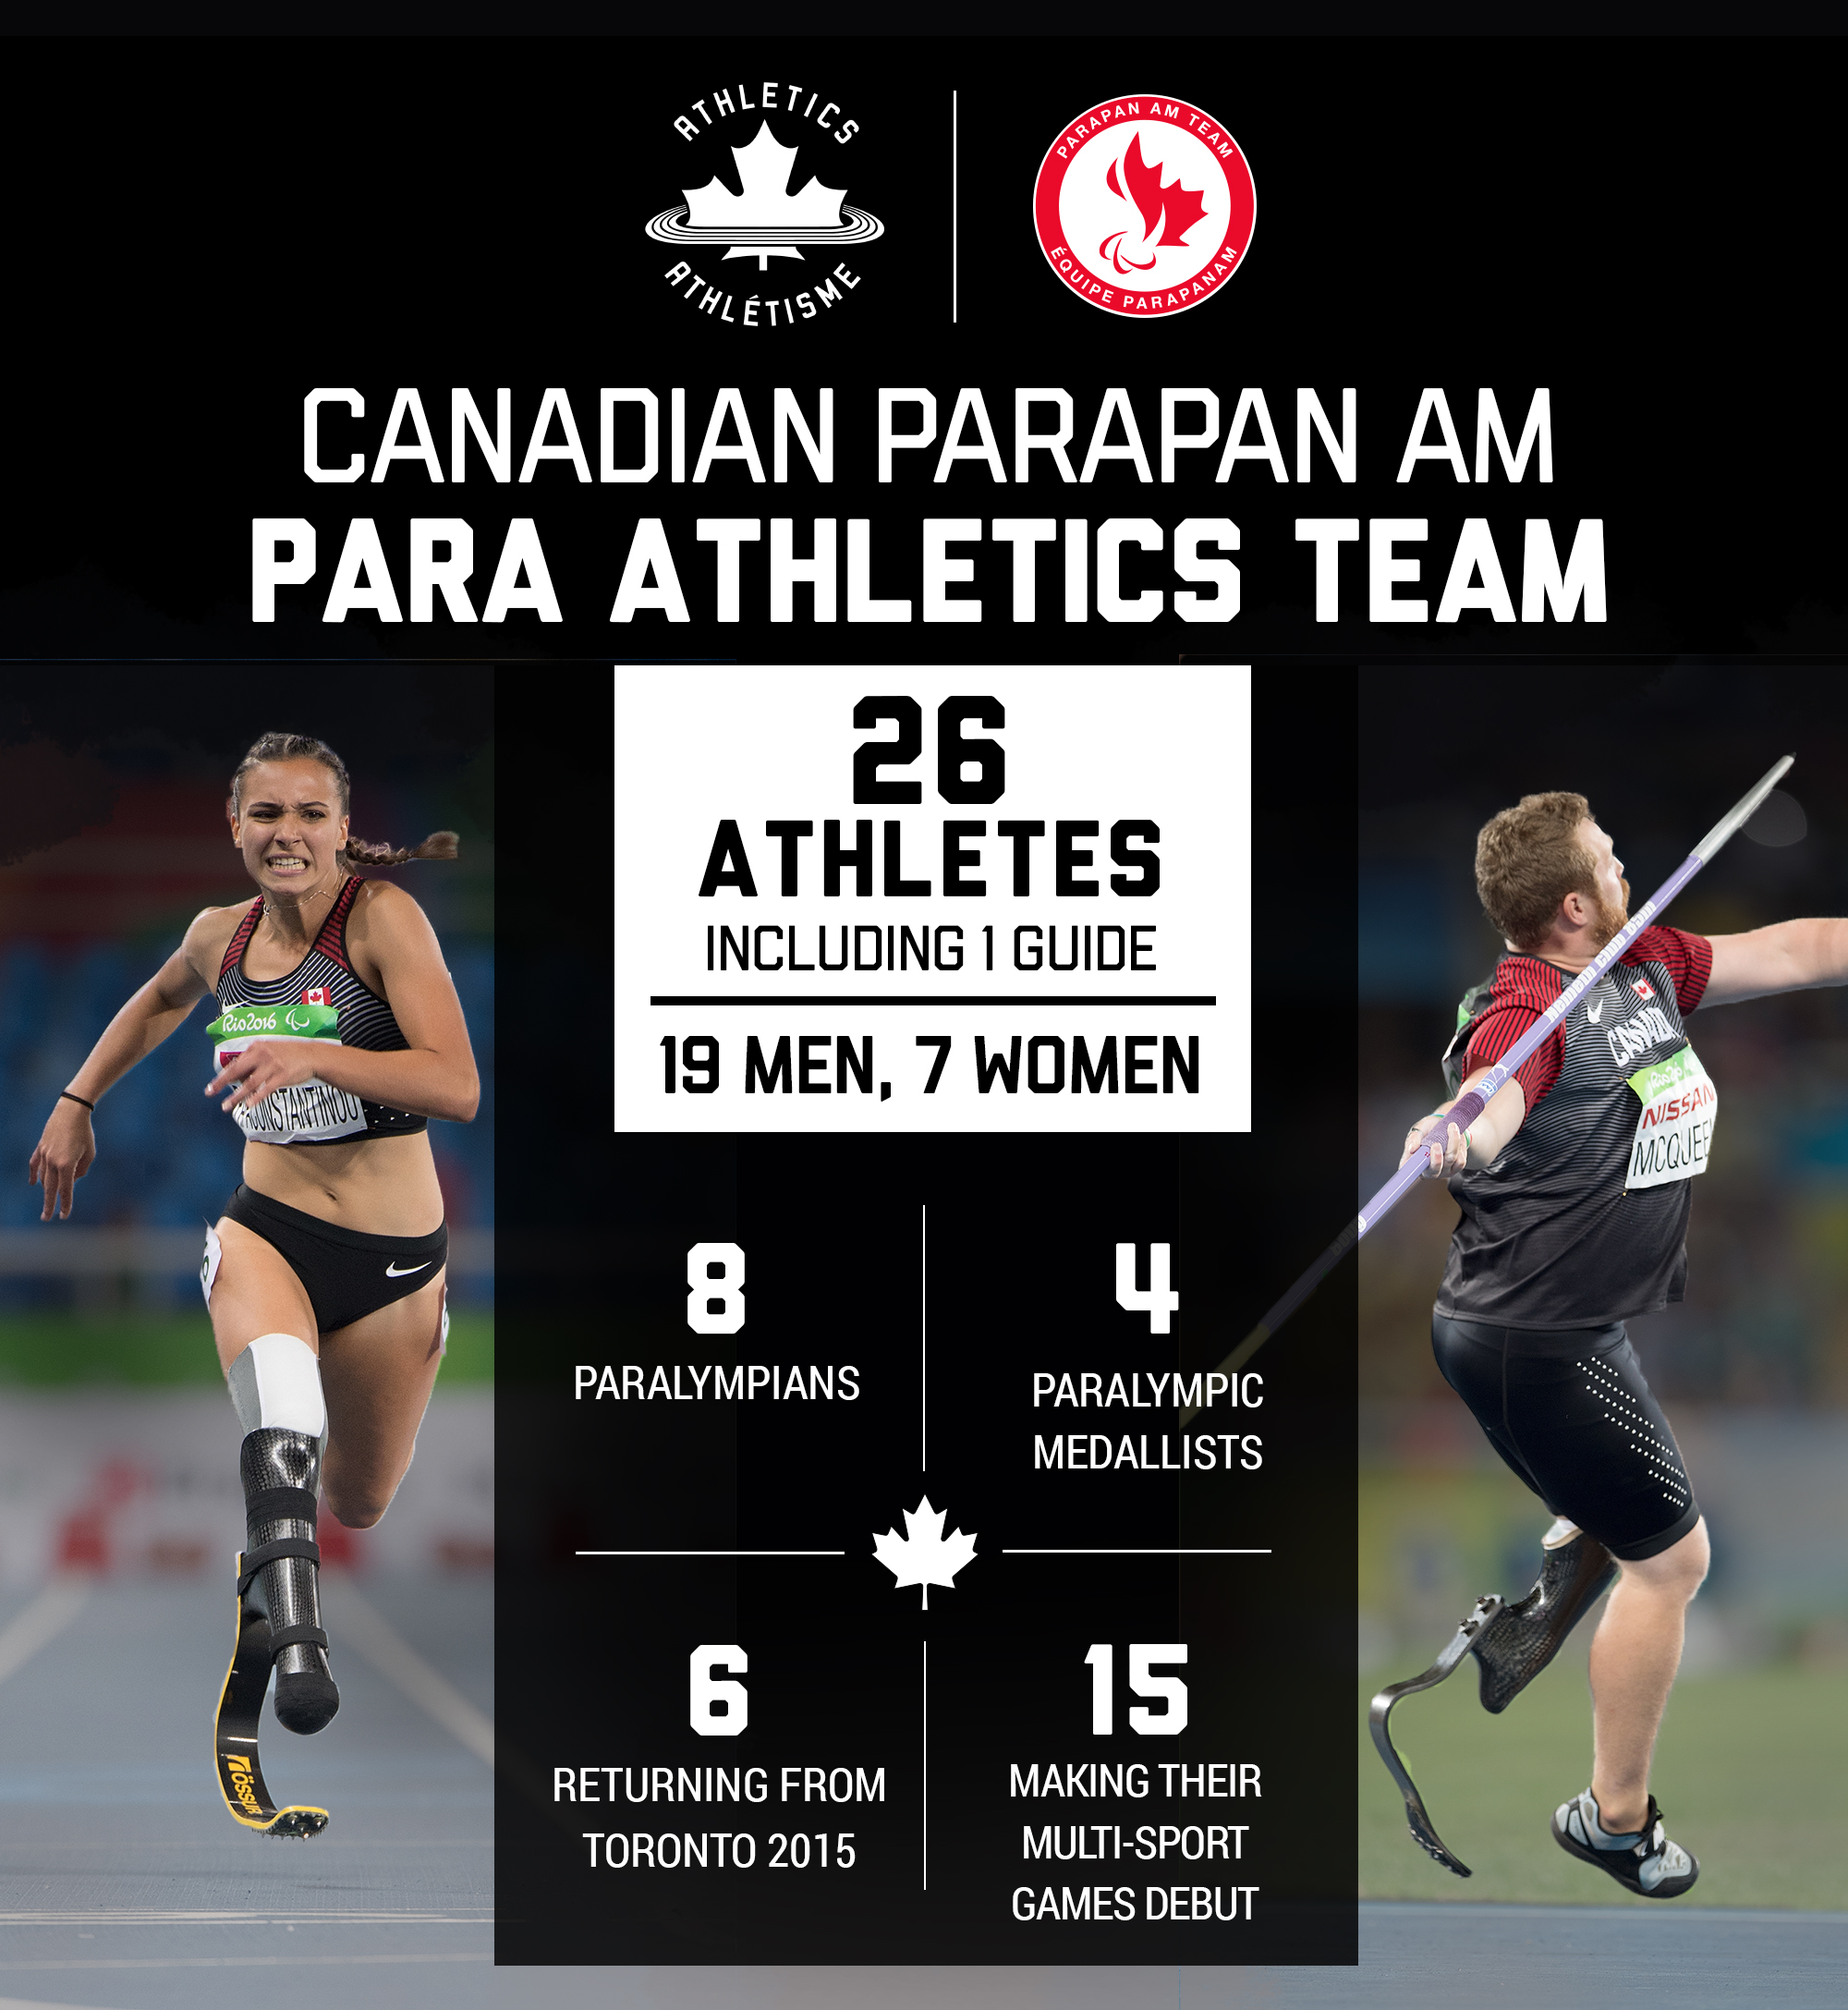 A graphic showing the make-up of the Canadian Parapan Am para athletics team